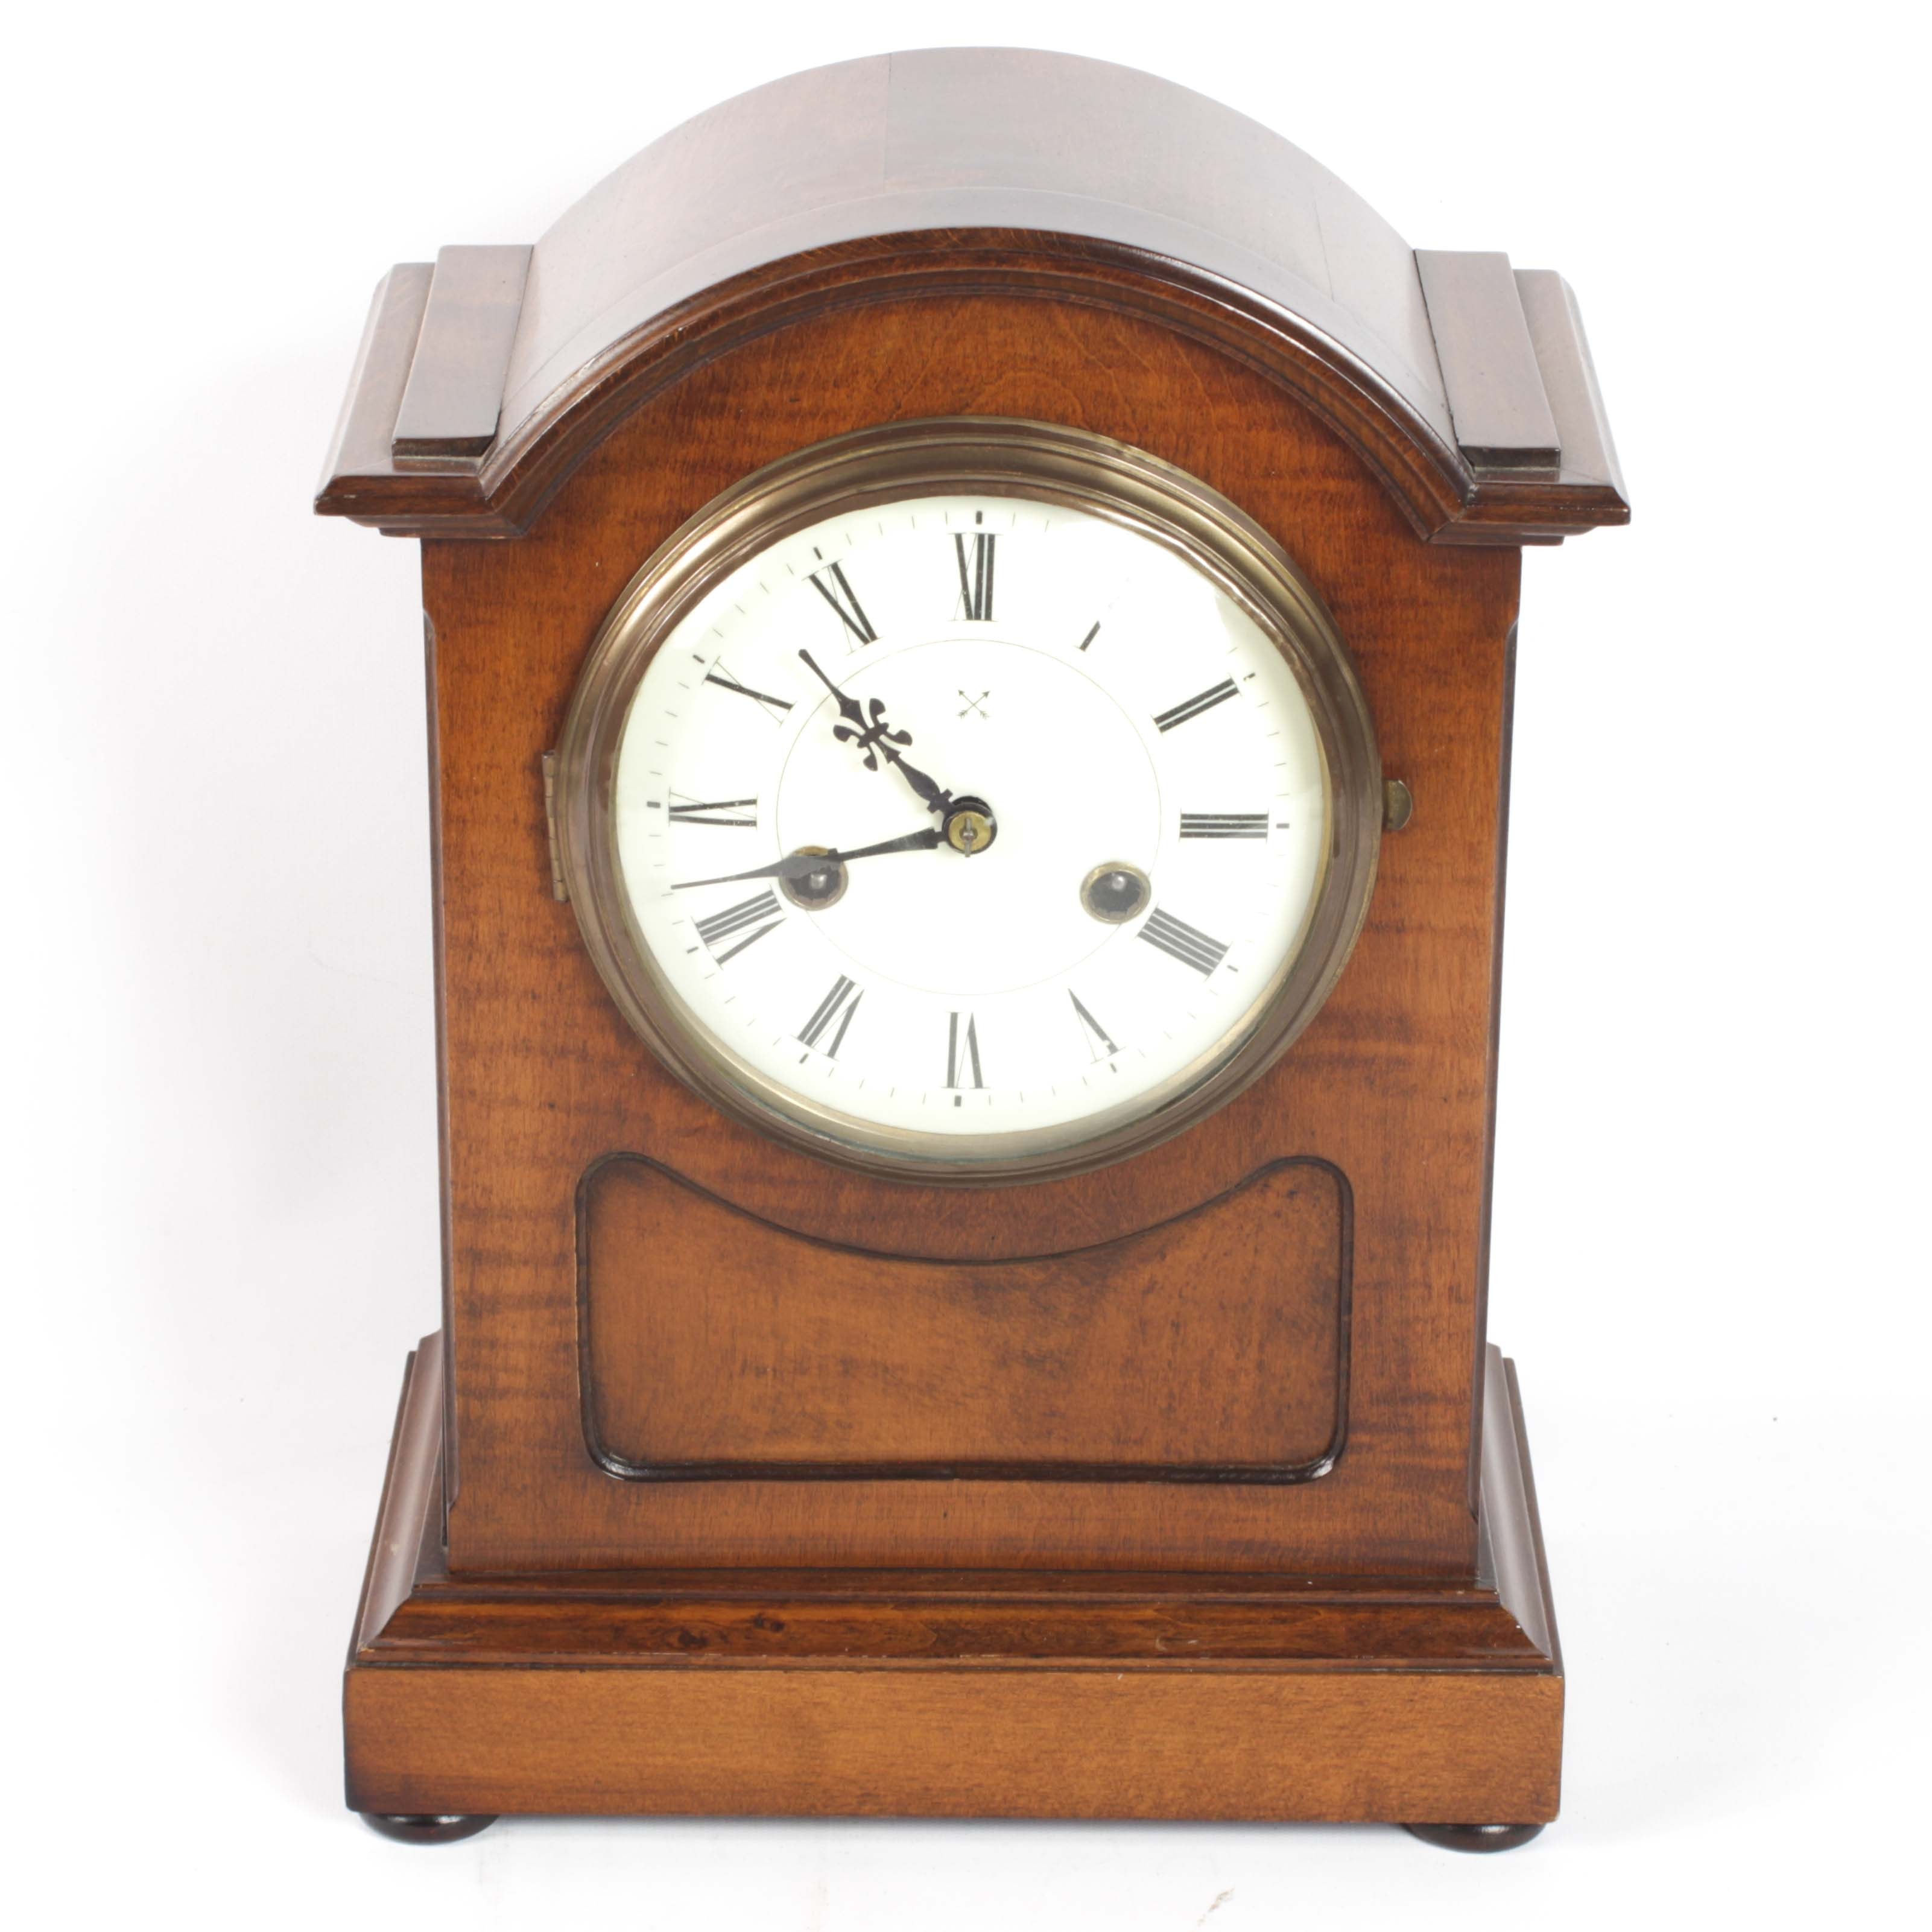 Hamburg American Clock Company Mahogany Case Mantel Clock, Early 20th Century